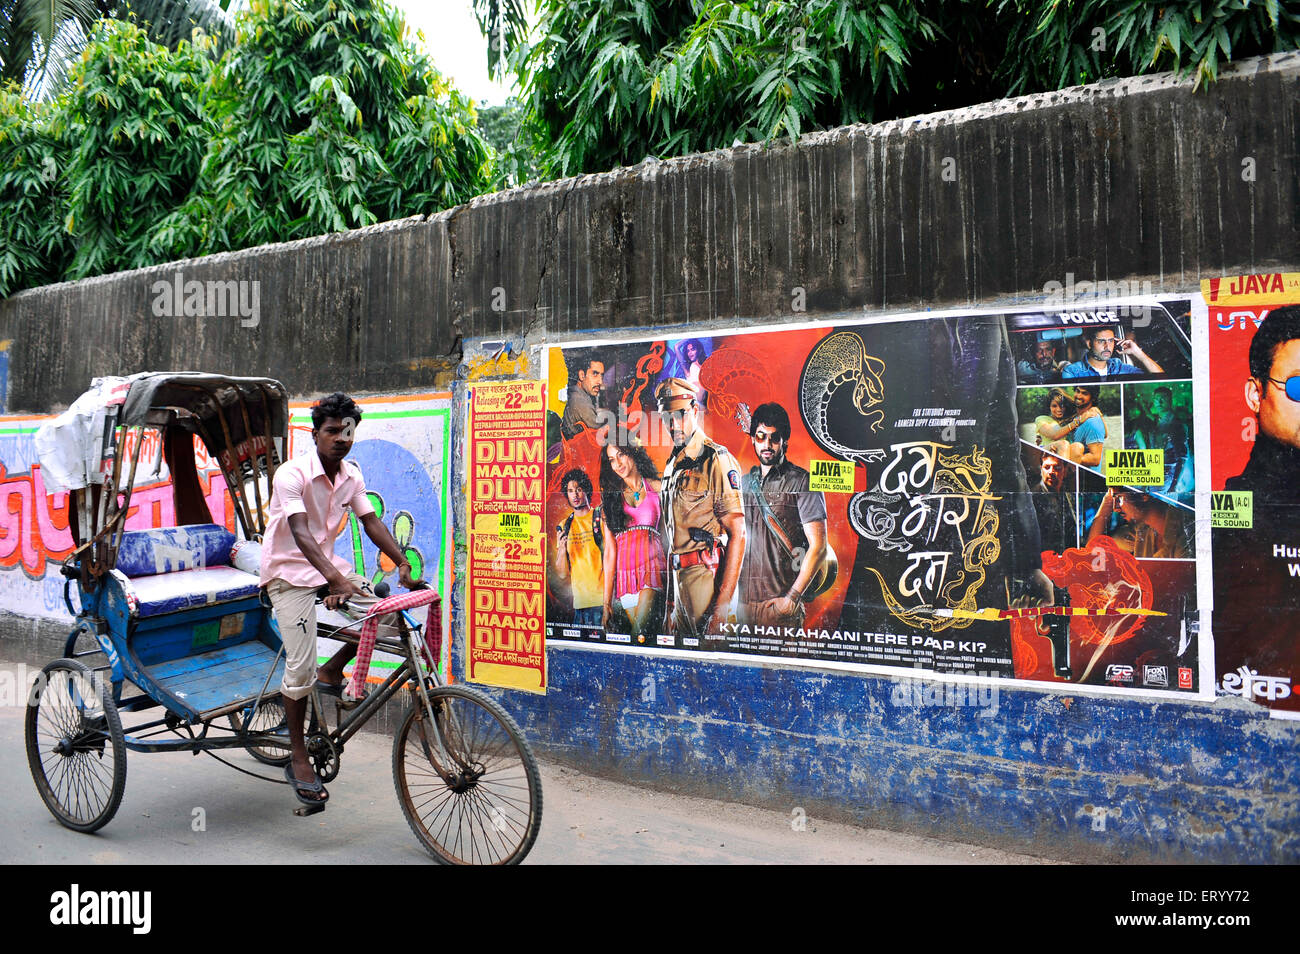 Election poster of candidates at  Kolkata India competing with cycle rickshaws Film posters - Stock Image